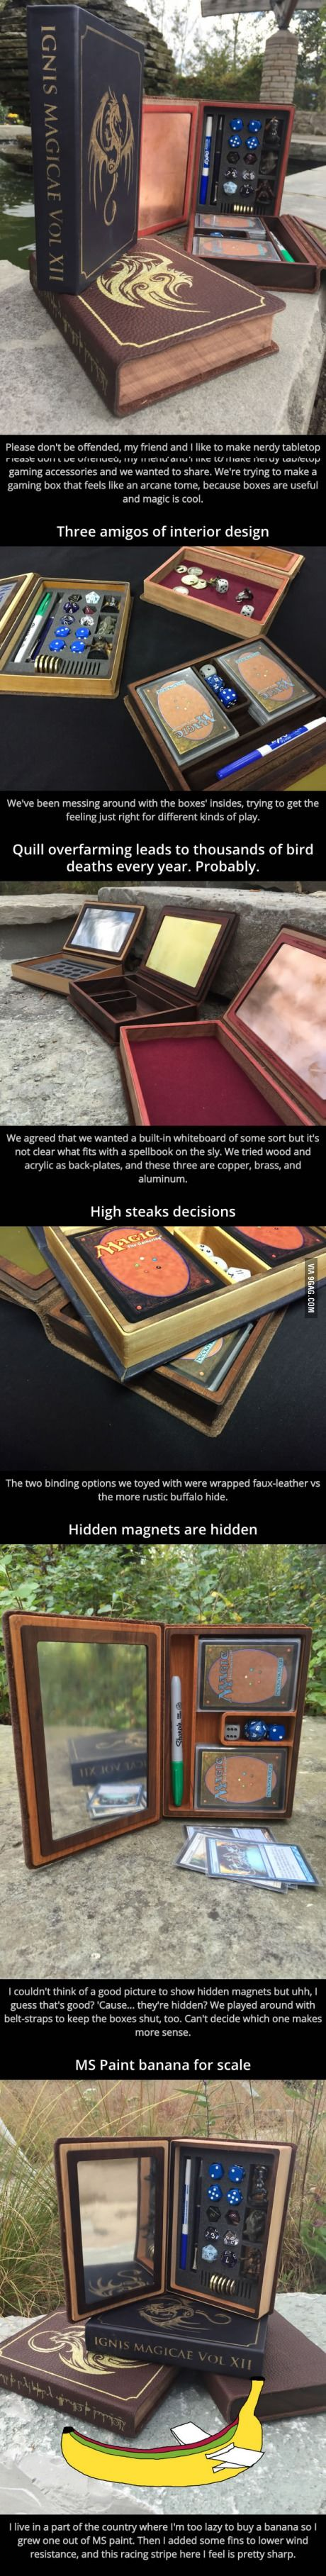 They made some spellbook-styled gaming boxes!